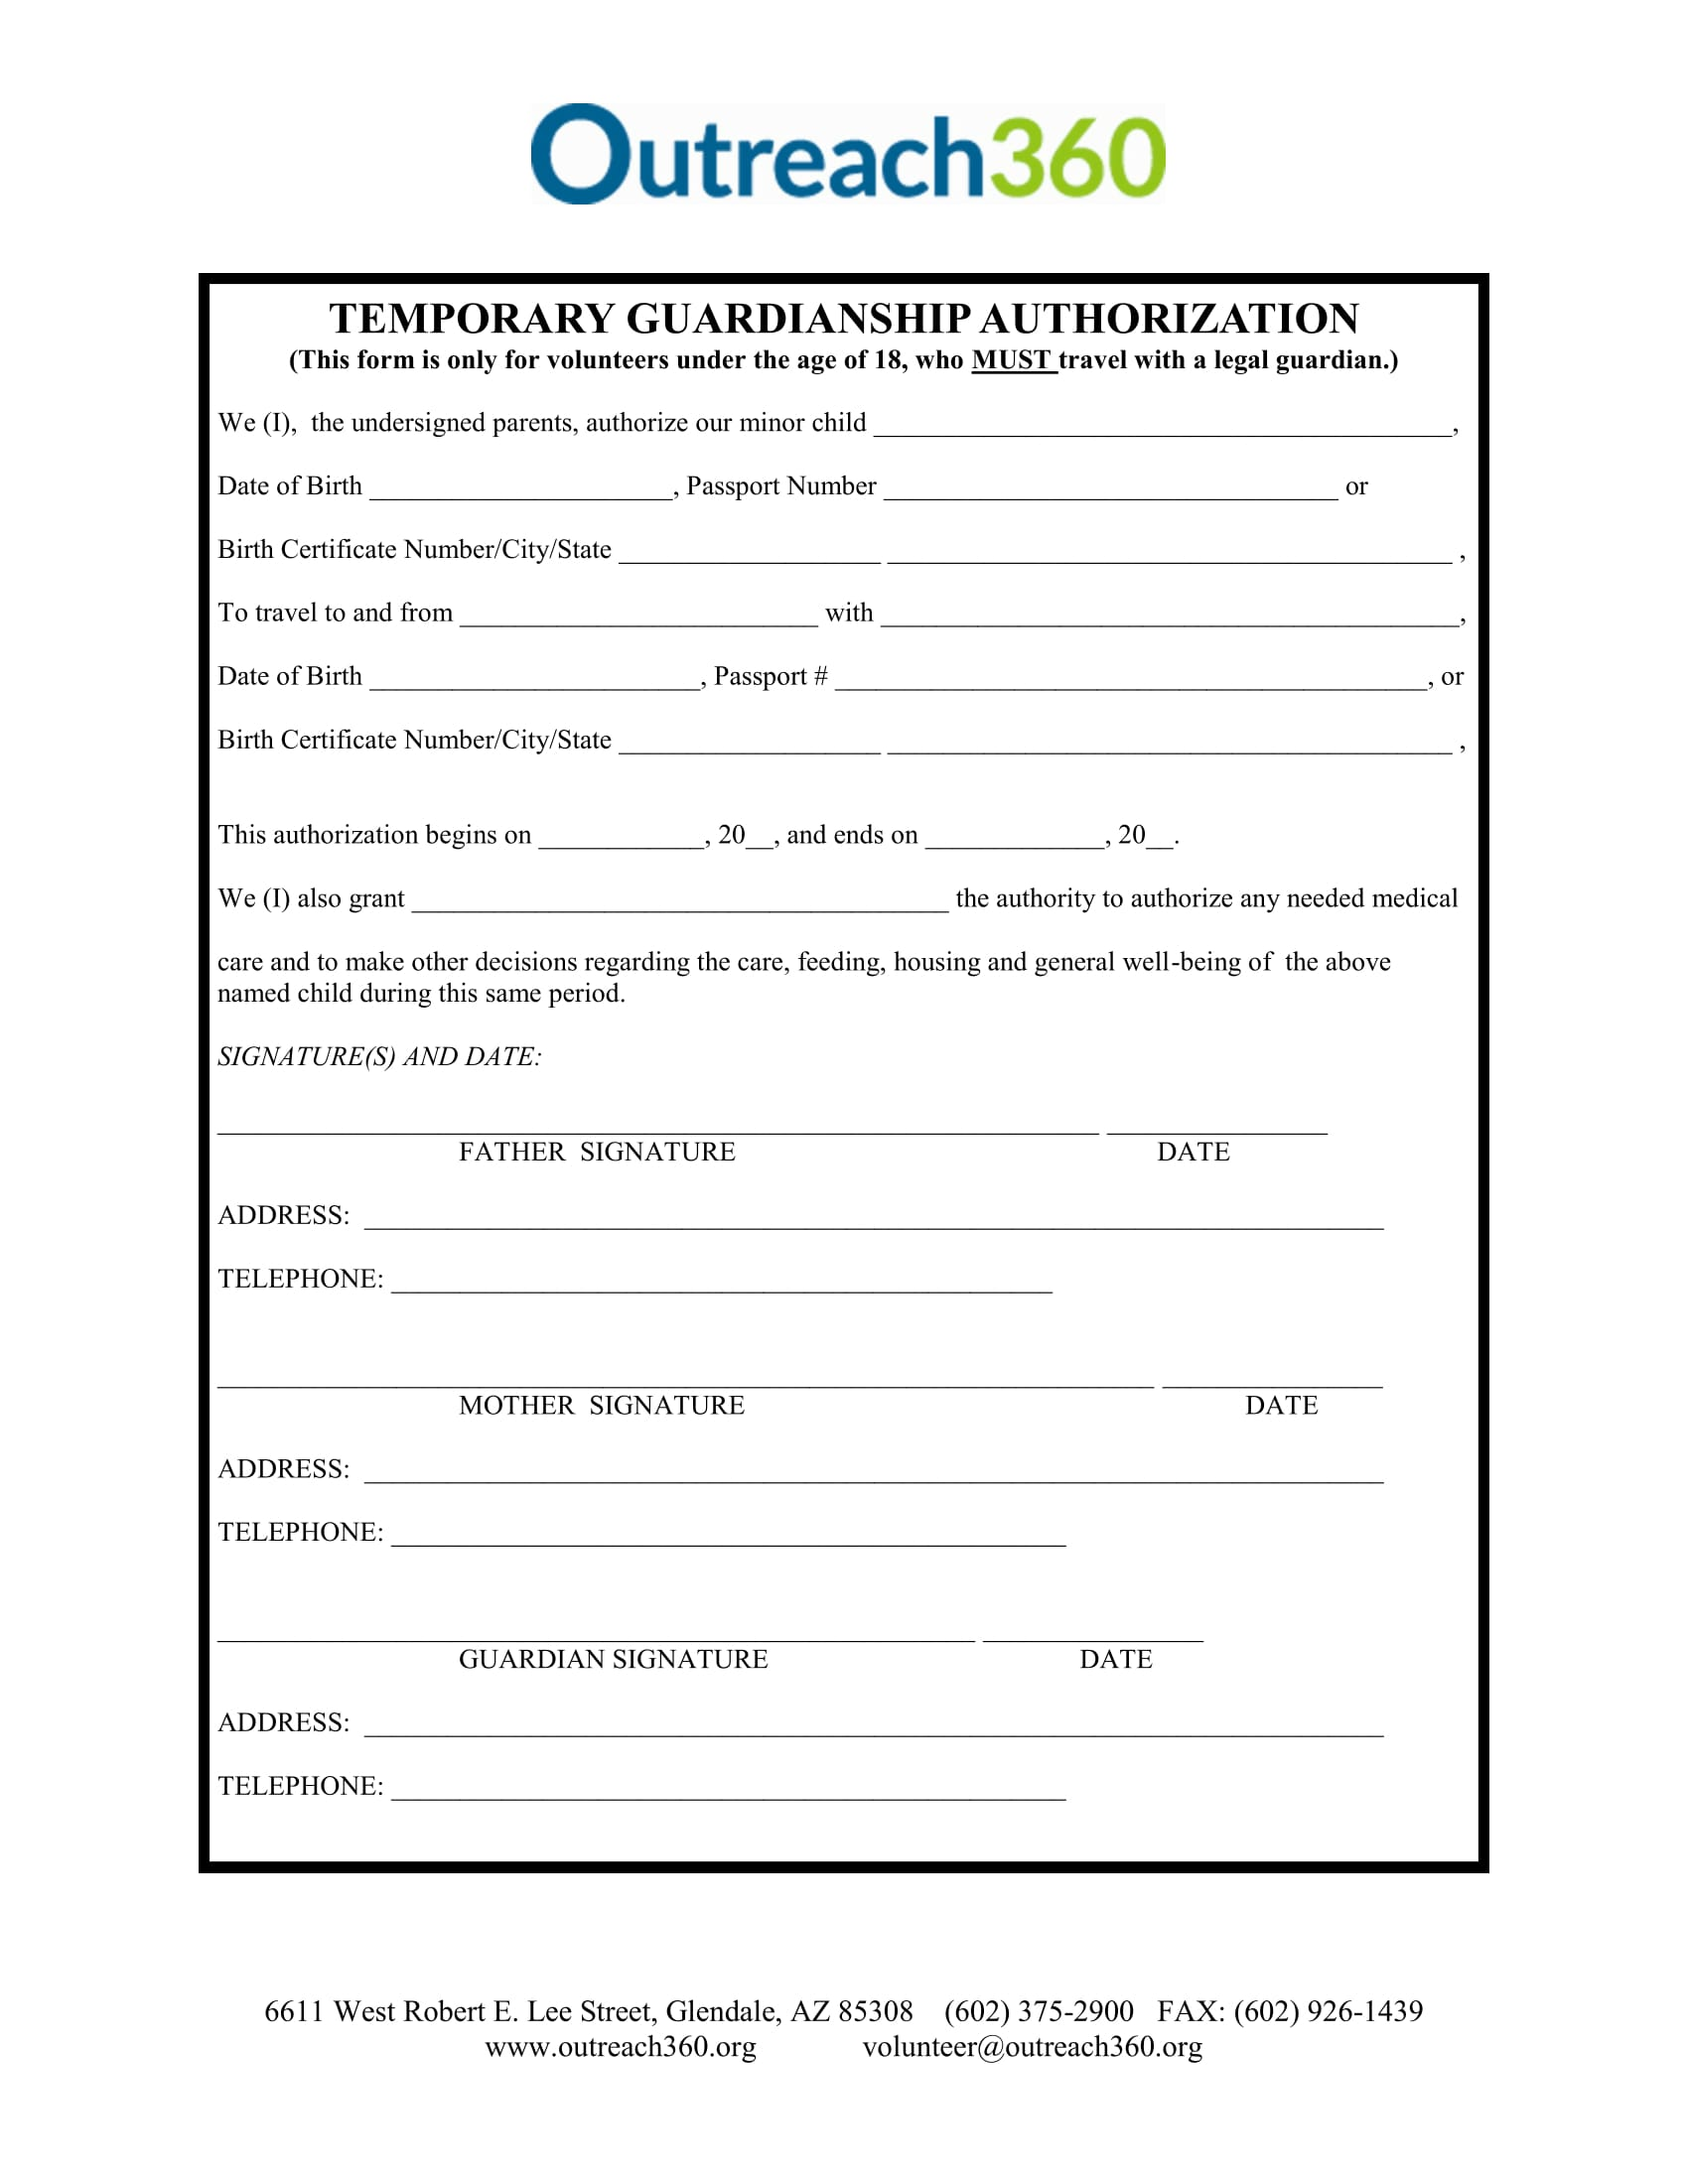 How to write a temporary guardianship letter with samples oukasfo tagshow to write a temporary custody letter with sampleletter of incapacity sample bing pdfdirffcomhow to write a vacation request email with samples25 spiritdancerdesigns Image collections